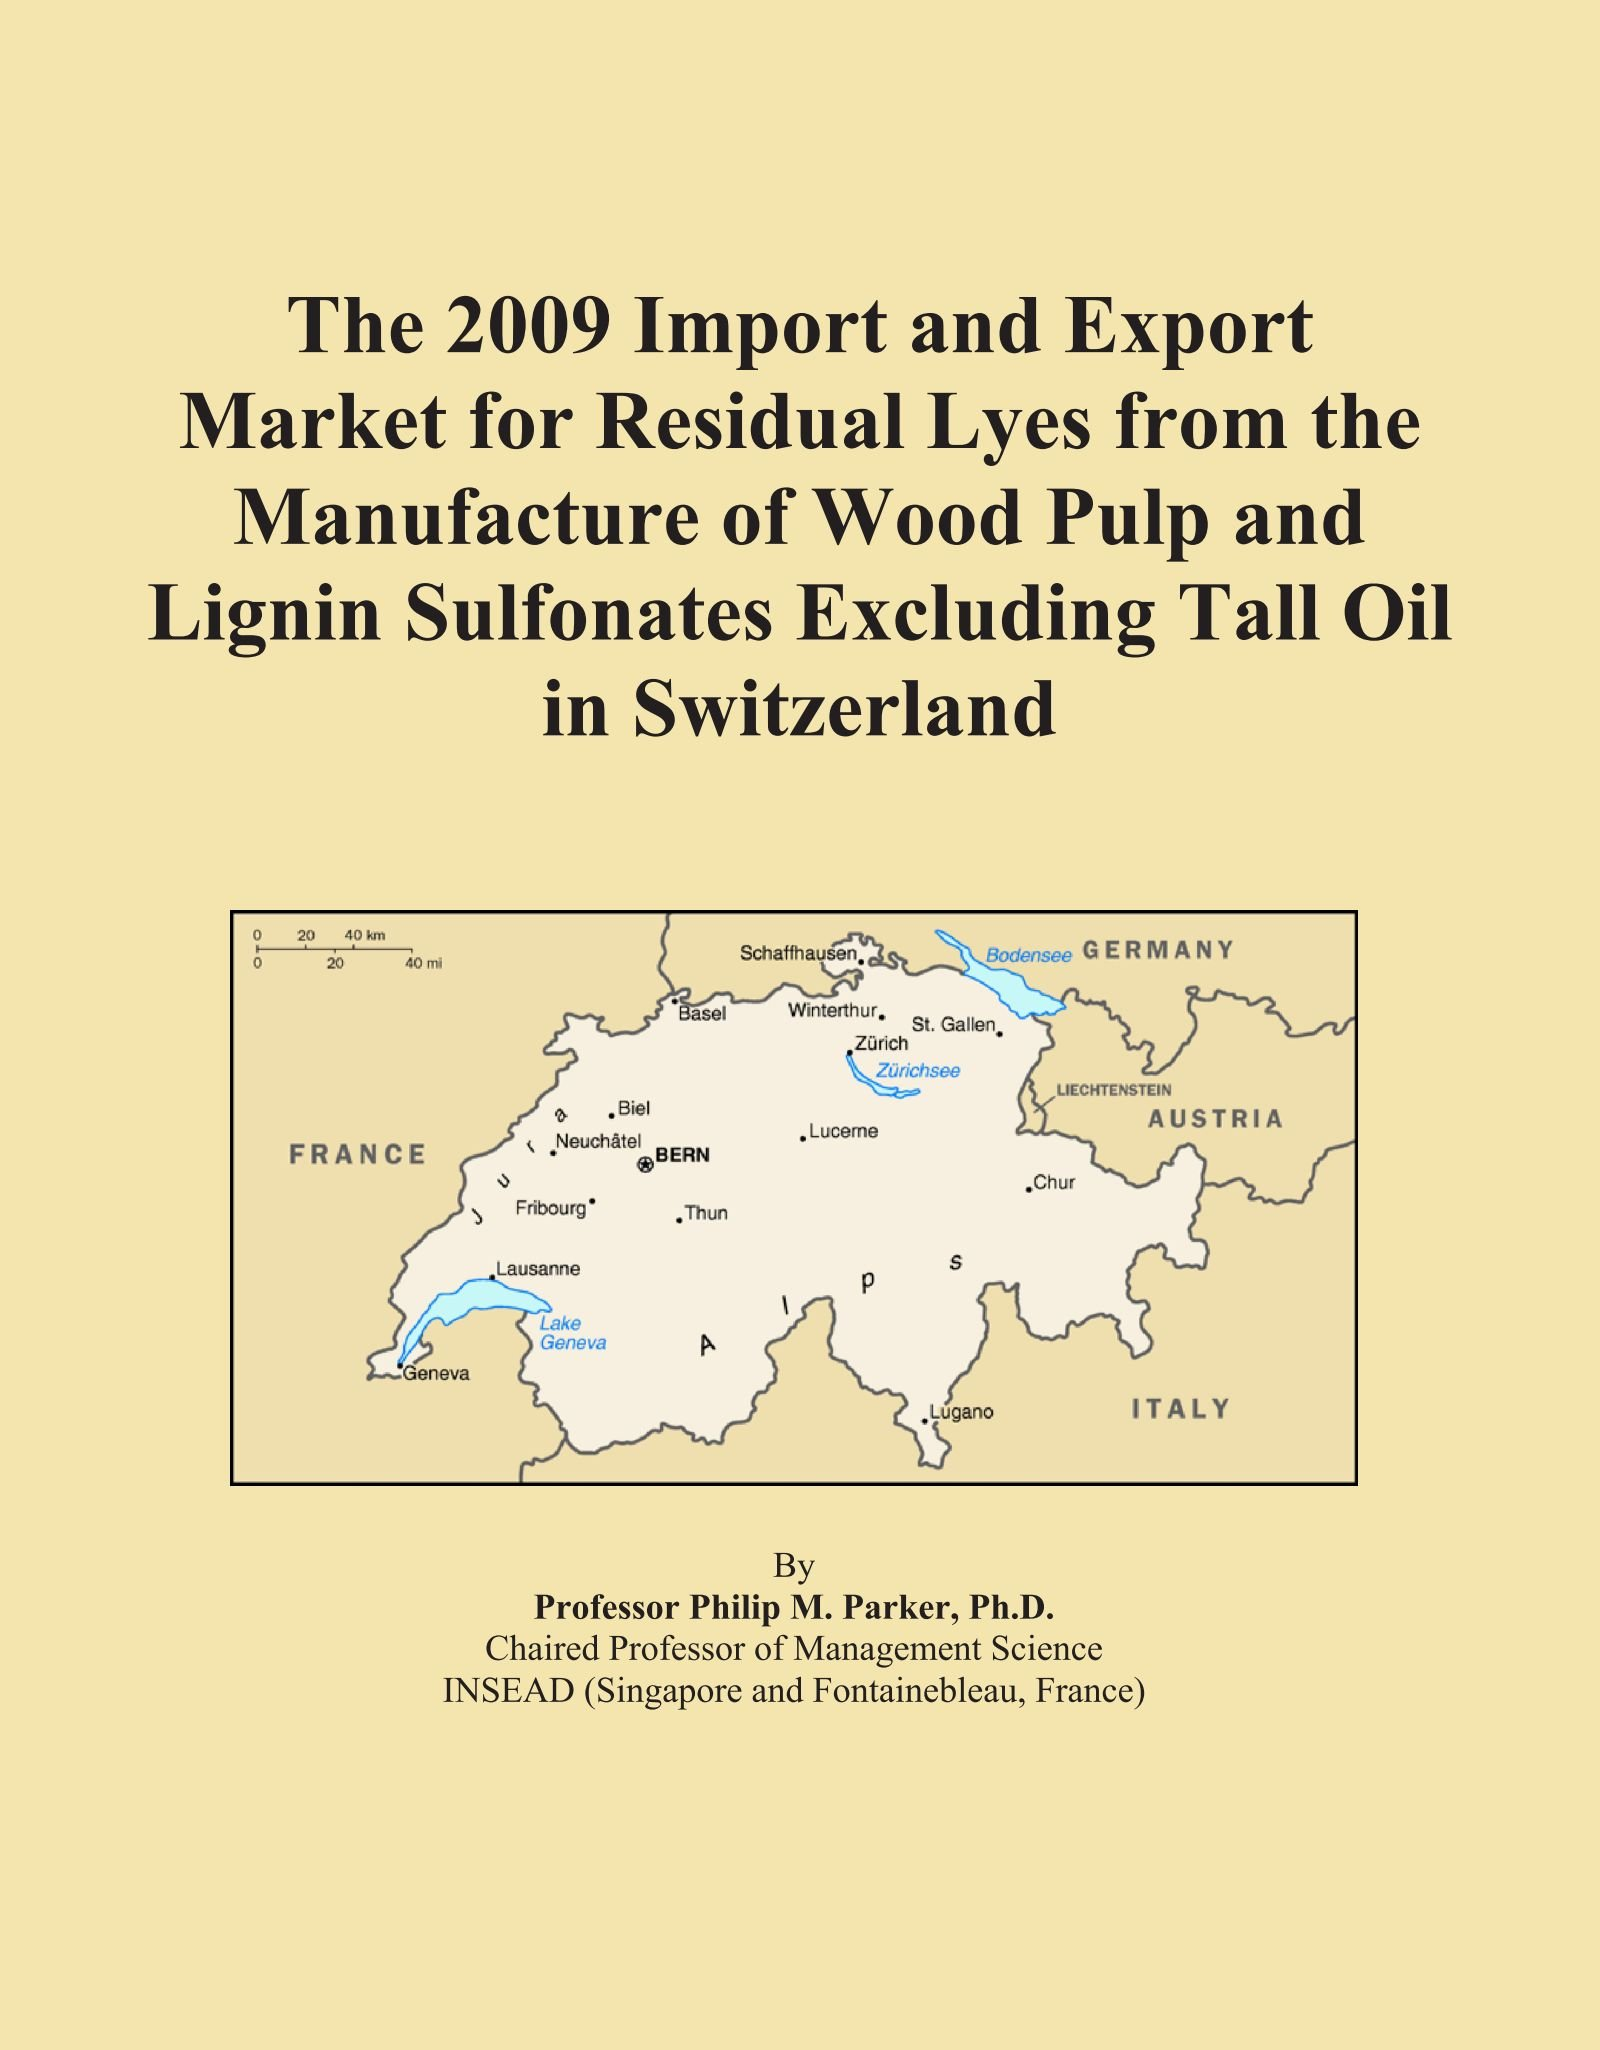 Download The 2009 Import and Export Market for Residual Lyes from the Manufacture of Wood Pulp and Lignin Sulfonates Excluding Tall Oil in Switzerland ebook